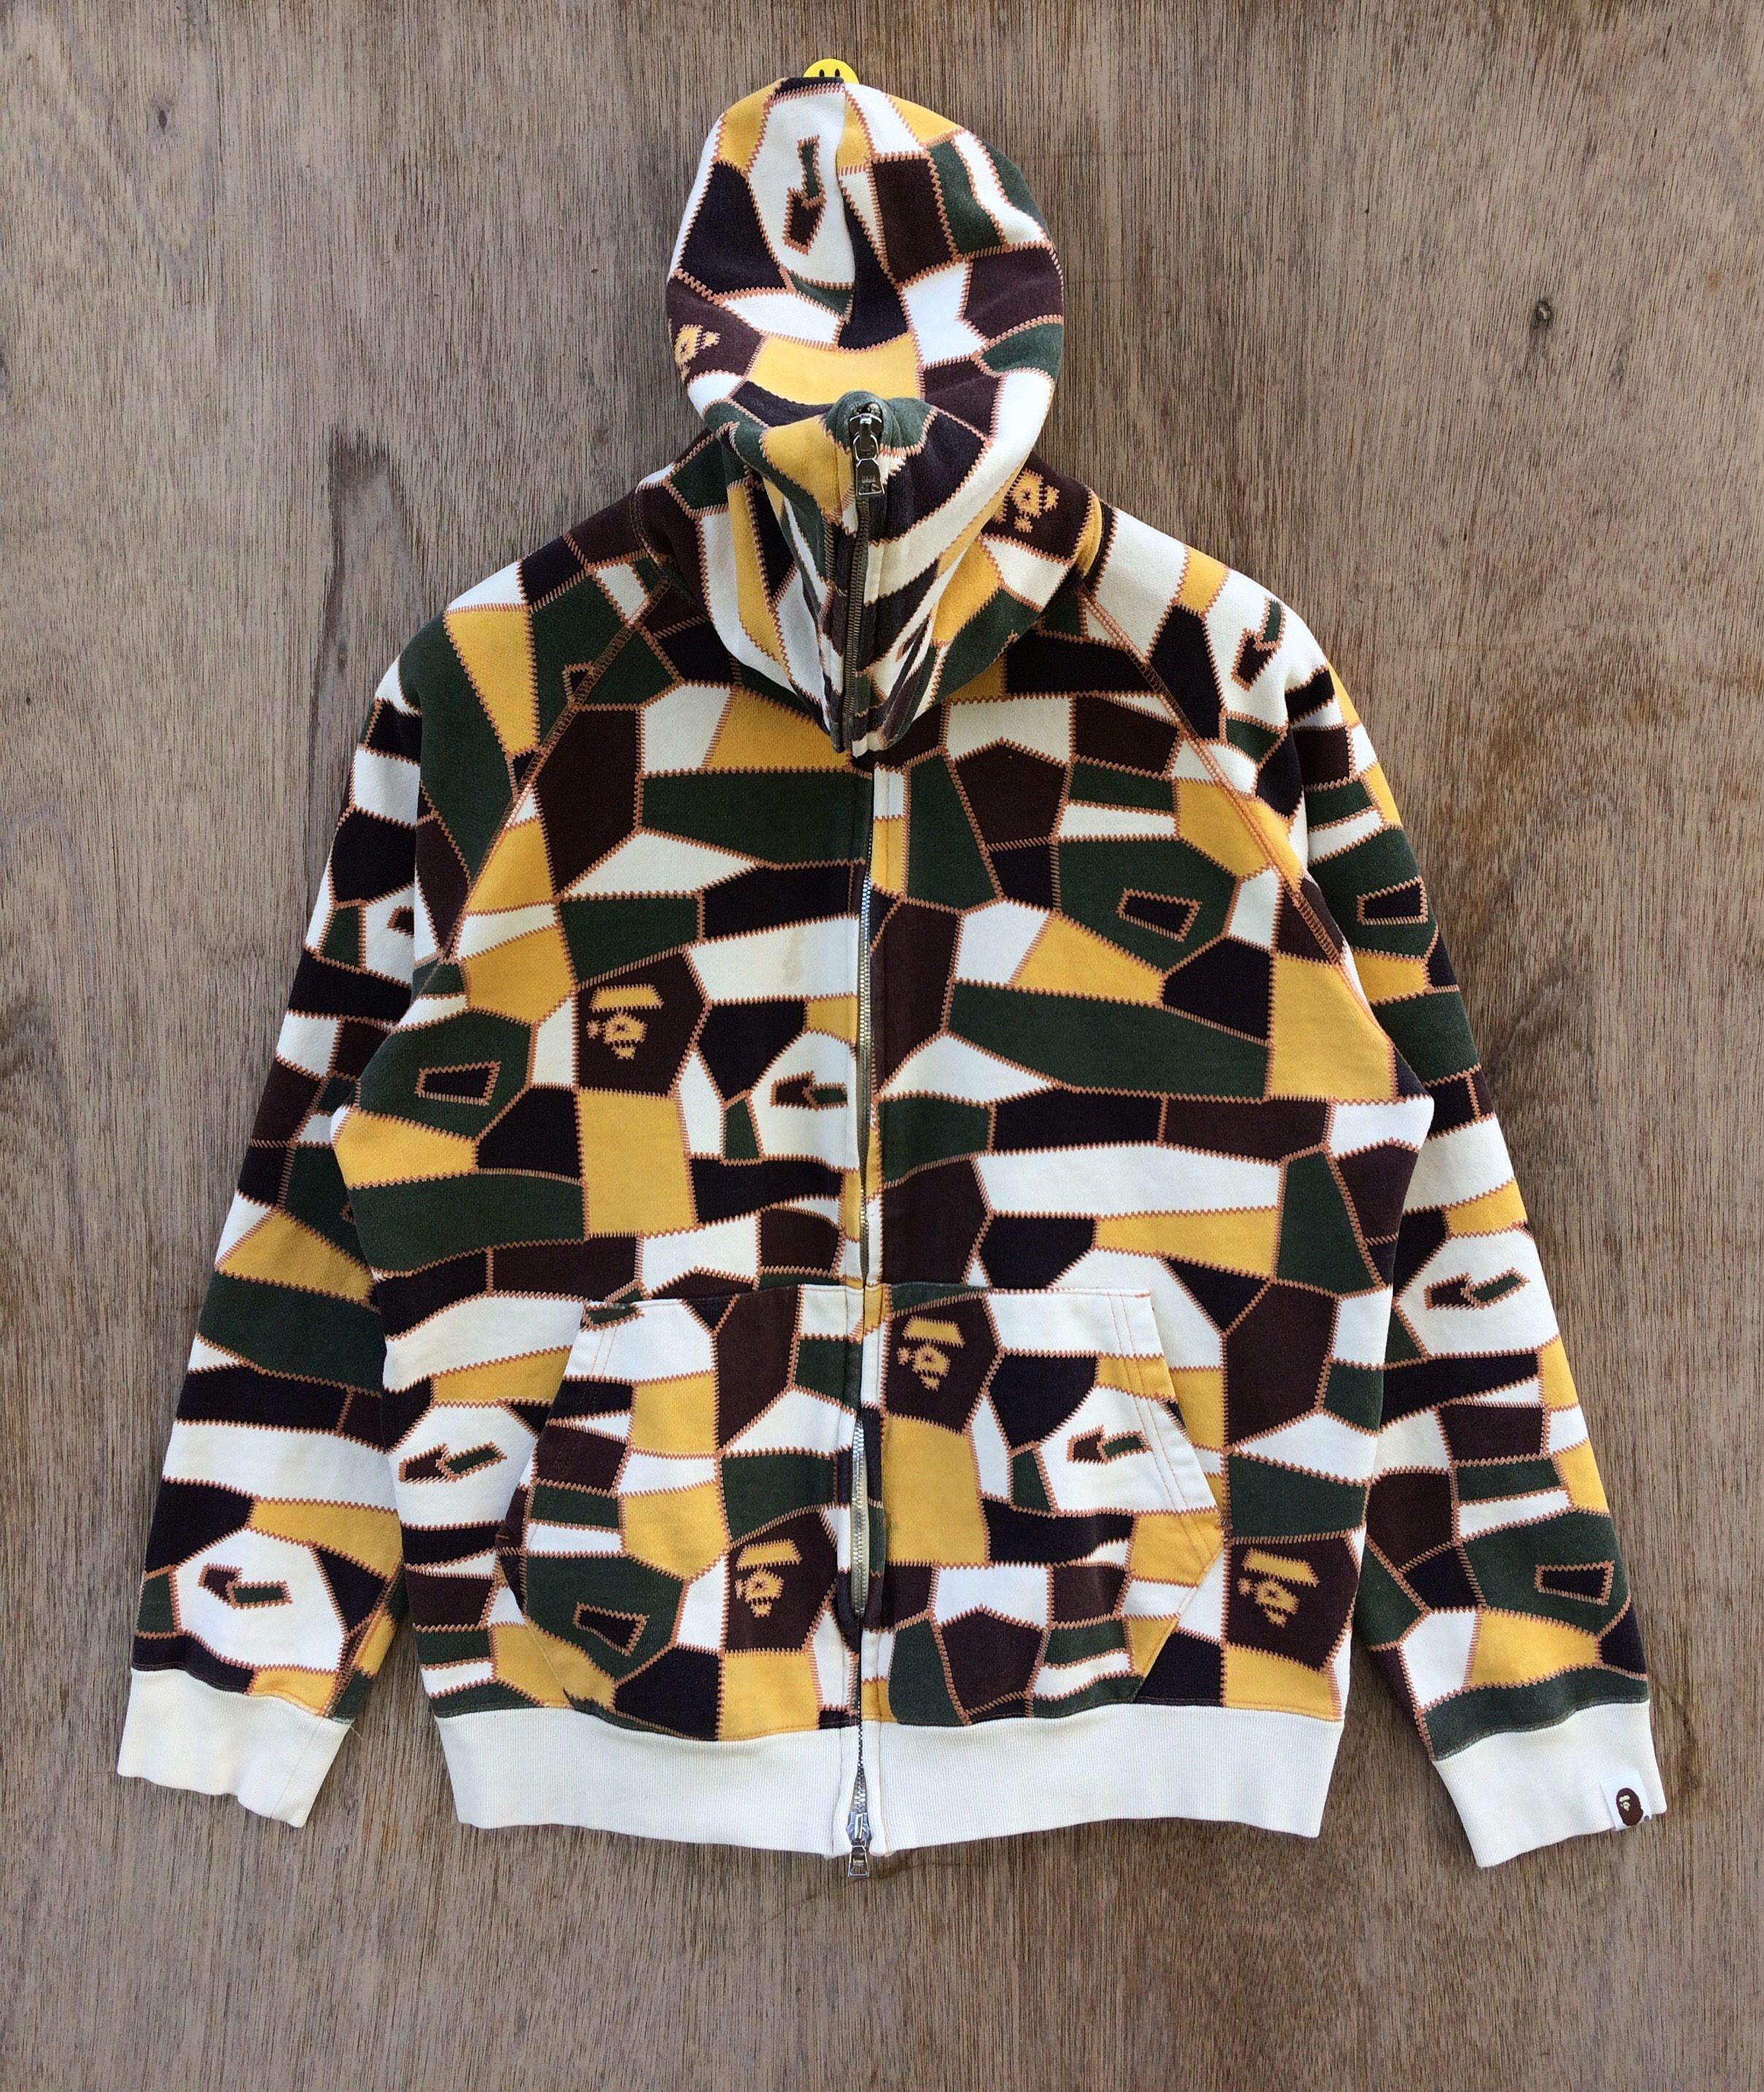 d09eb37d A bathing ape/Digital camo patch Click picture to see detail or to view  item. #etsy #clothing #hoodie #bathingapesweater #bathingapeshirt  #abathingape #bape ...